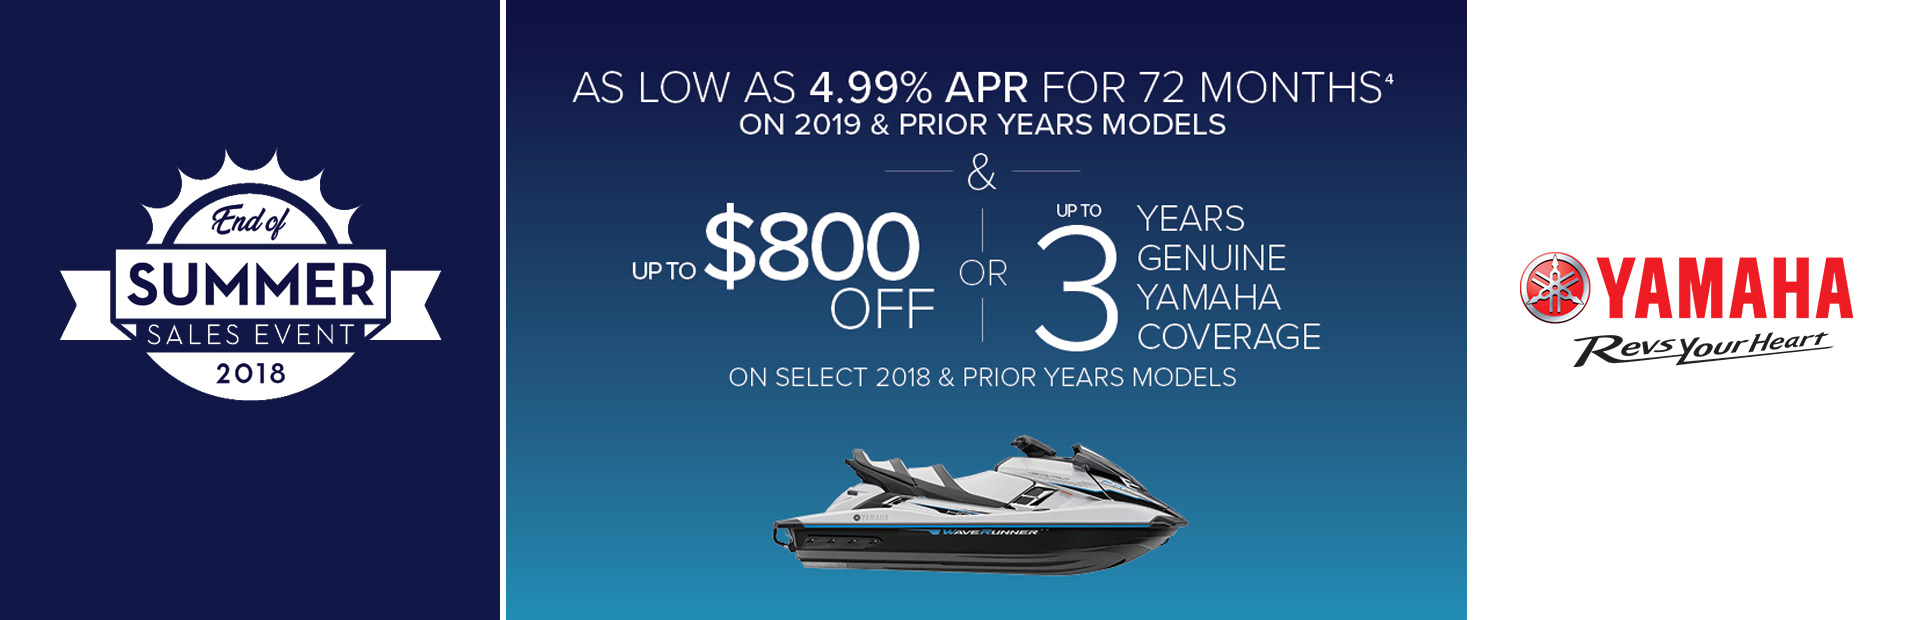 End of Season Sales Event - As Low As 4.99% APR